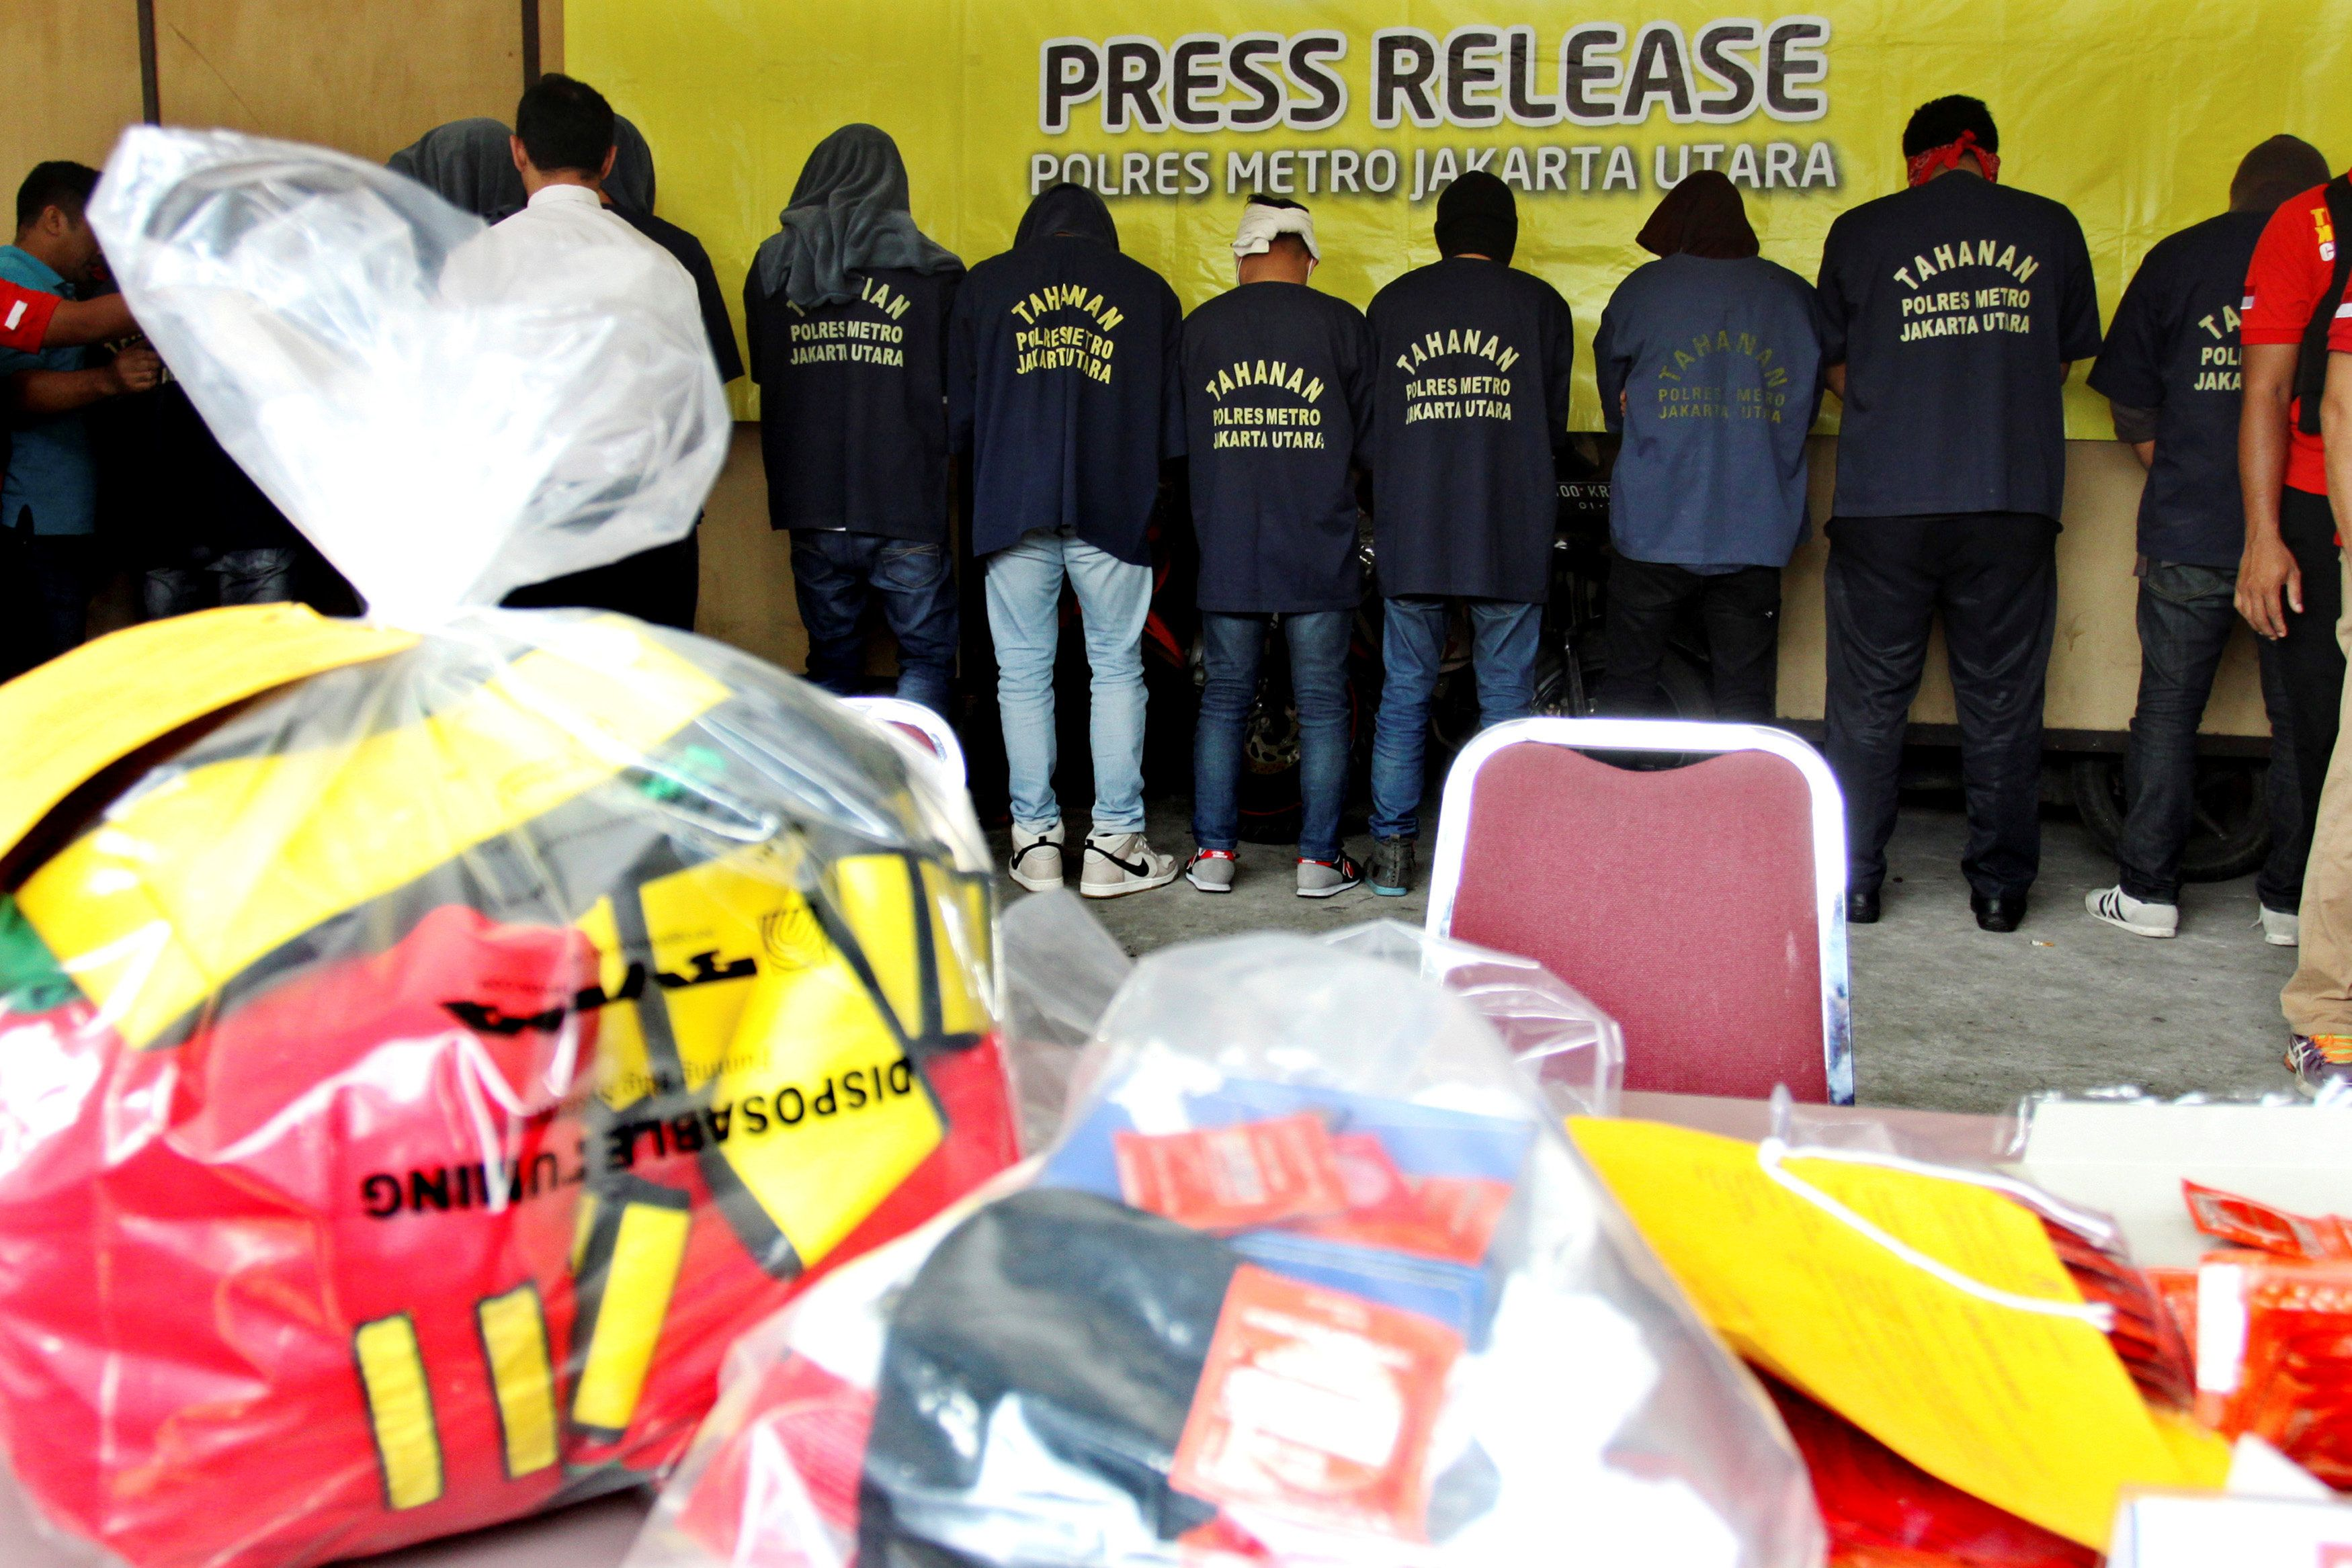 Some of the more than 140 men detained after a raid on what authorities described as a gay prostitution ring being run out of an entertainment venue are shown to the media at a police station in Jakarta, Indonesia May 22, 2017 in this photo taken by Antara Foto. Antara Foto/Reno Esnir via REUTERS    ATTENTION EDITORS - THIS IMAGE HAS BEEN SUPPLIED BY A THIRD PARTY. EDITORIAL USE ONLY. MANDATORY CREDIT. INDONESIA OUT. NO COMMERCIAL OR EDITORIAL SALES IN INDONESIA.